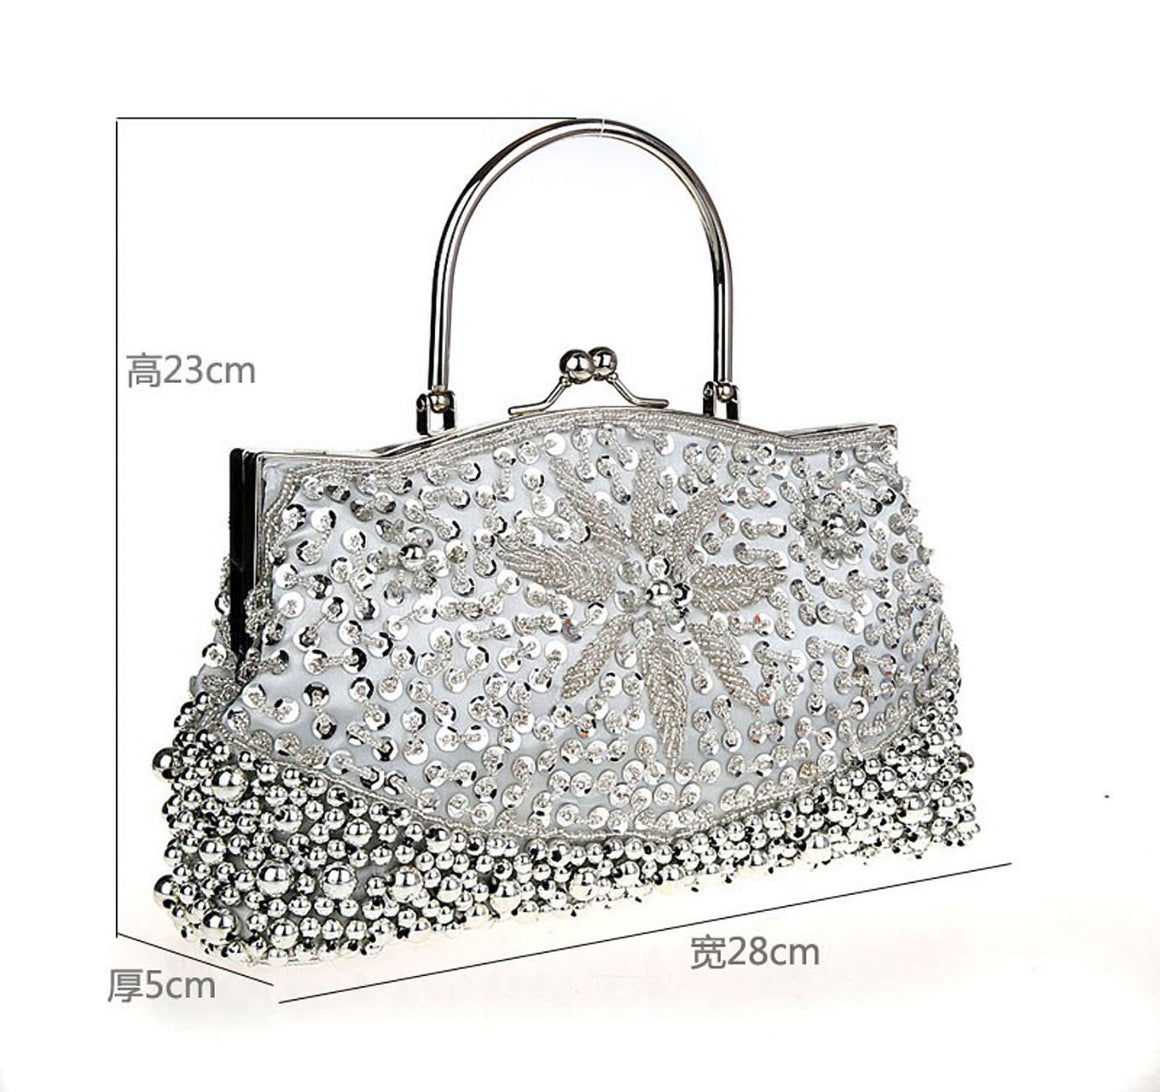 Fashion Black Ladies' Beading Beaded Banquet Handbag Clutch Party Bridal Evening Bag with Shoulder Chain Purse MakeupBag 78189-G